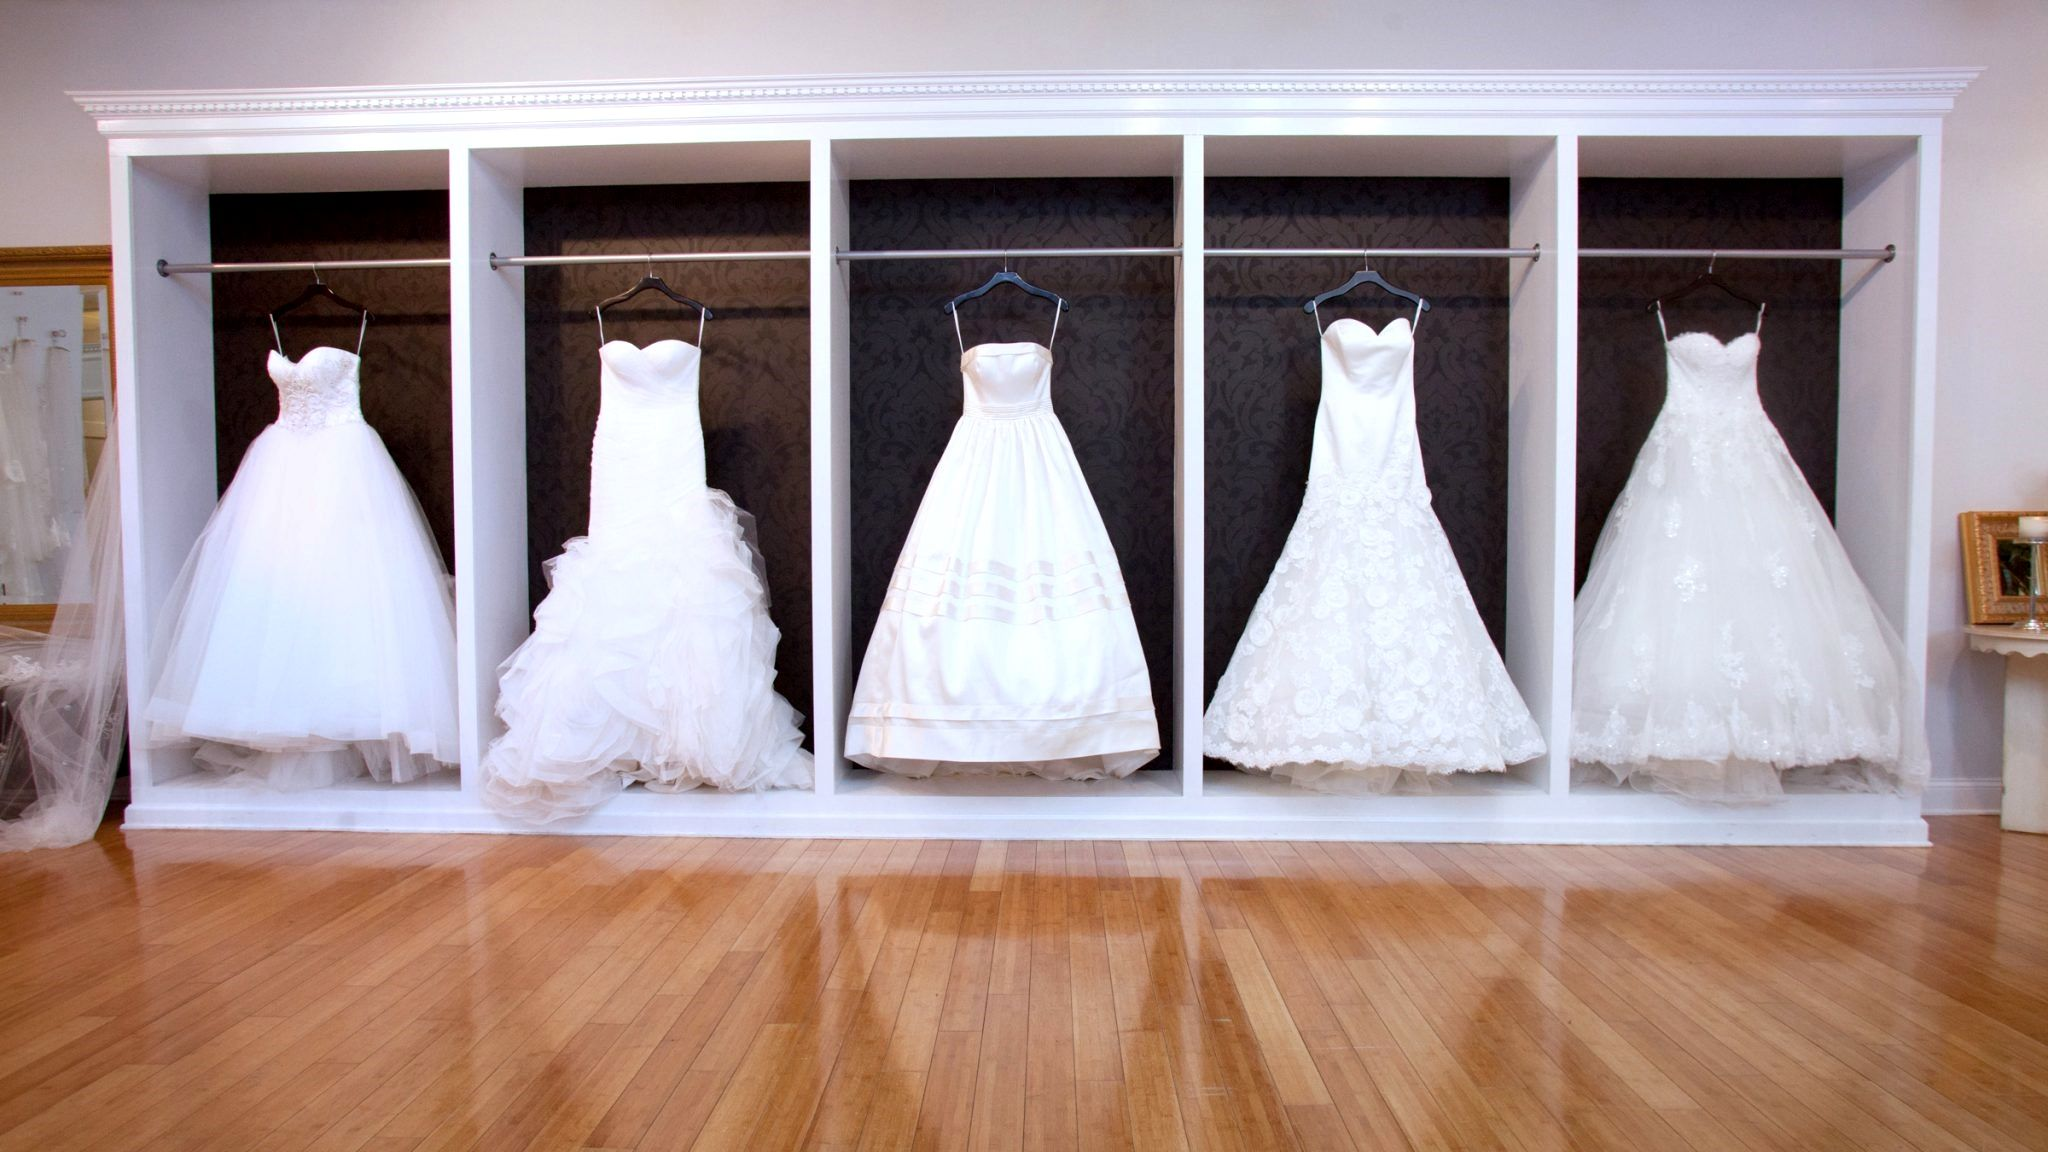 Bridal Shops In Morristown Nj Gallery